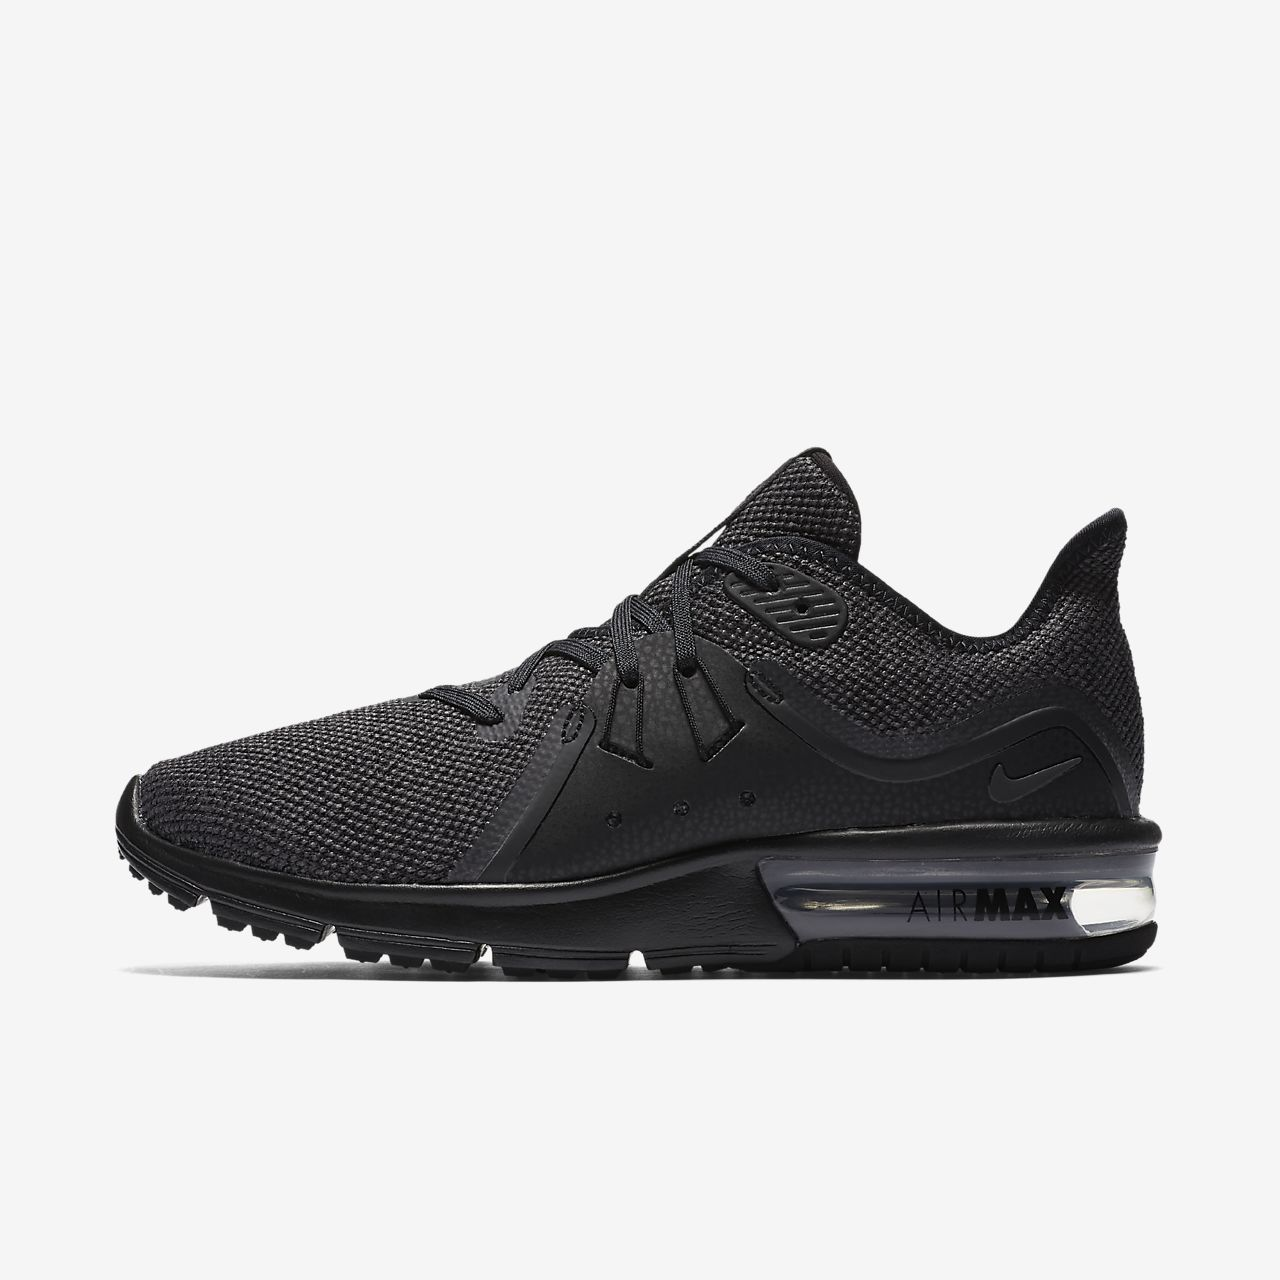 2018 nike air max womens nz